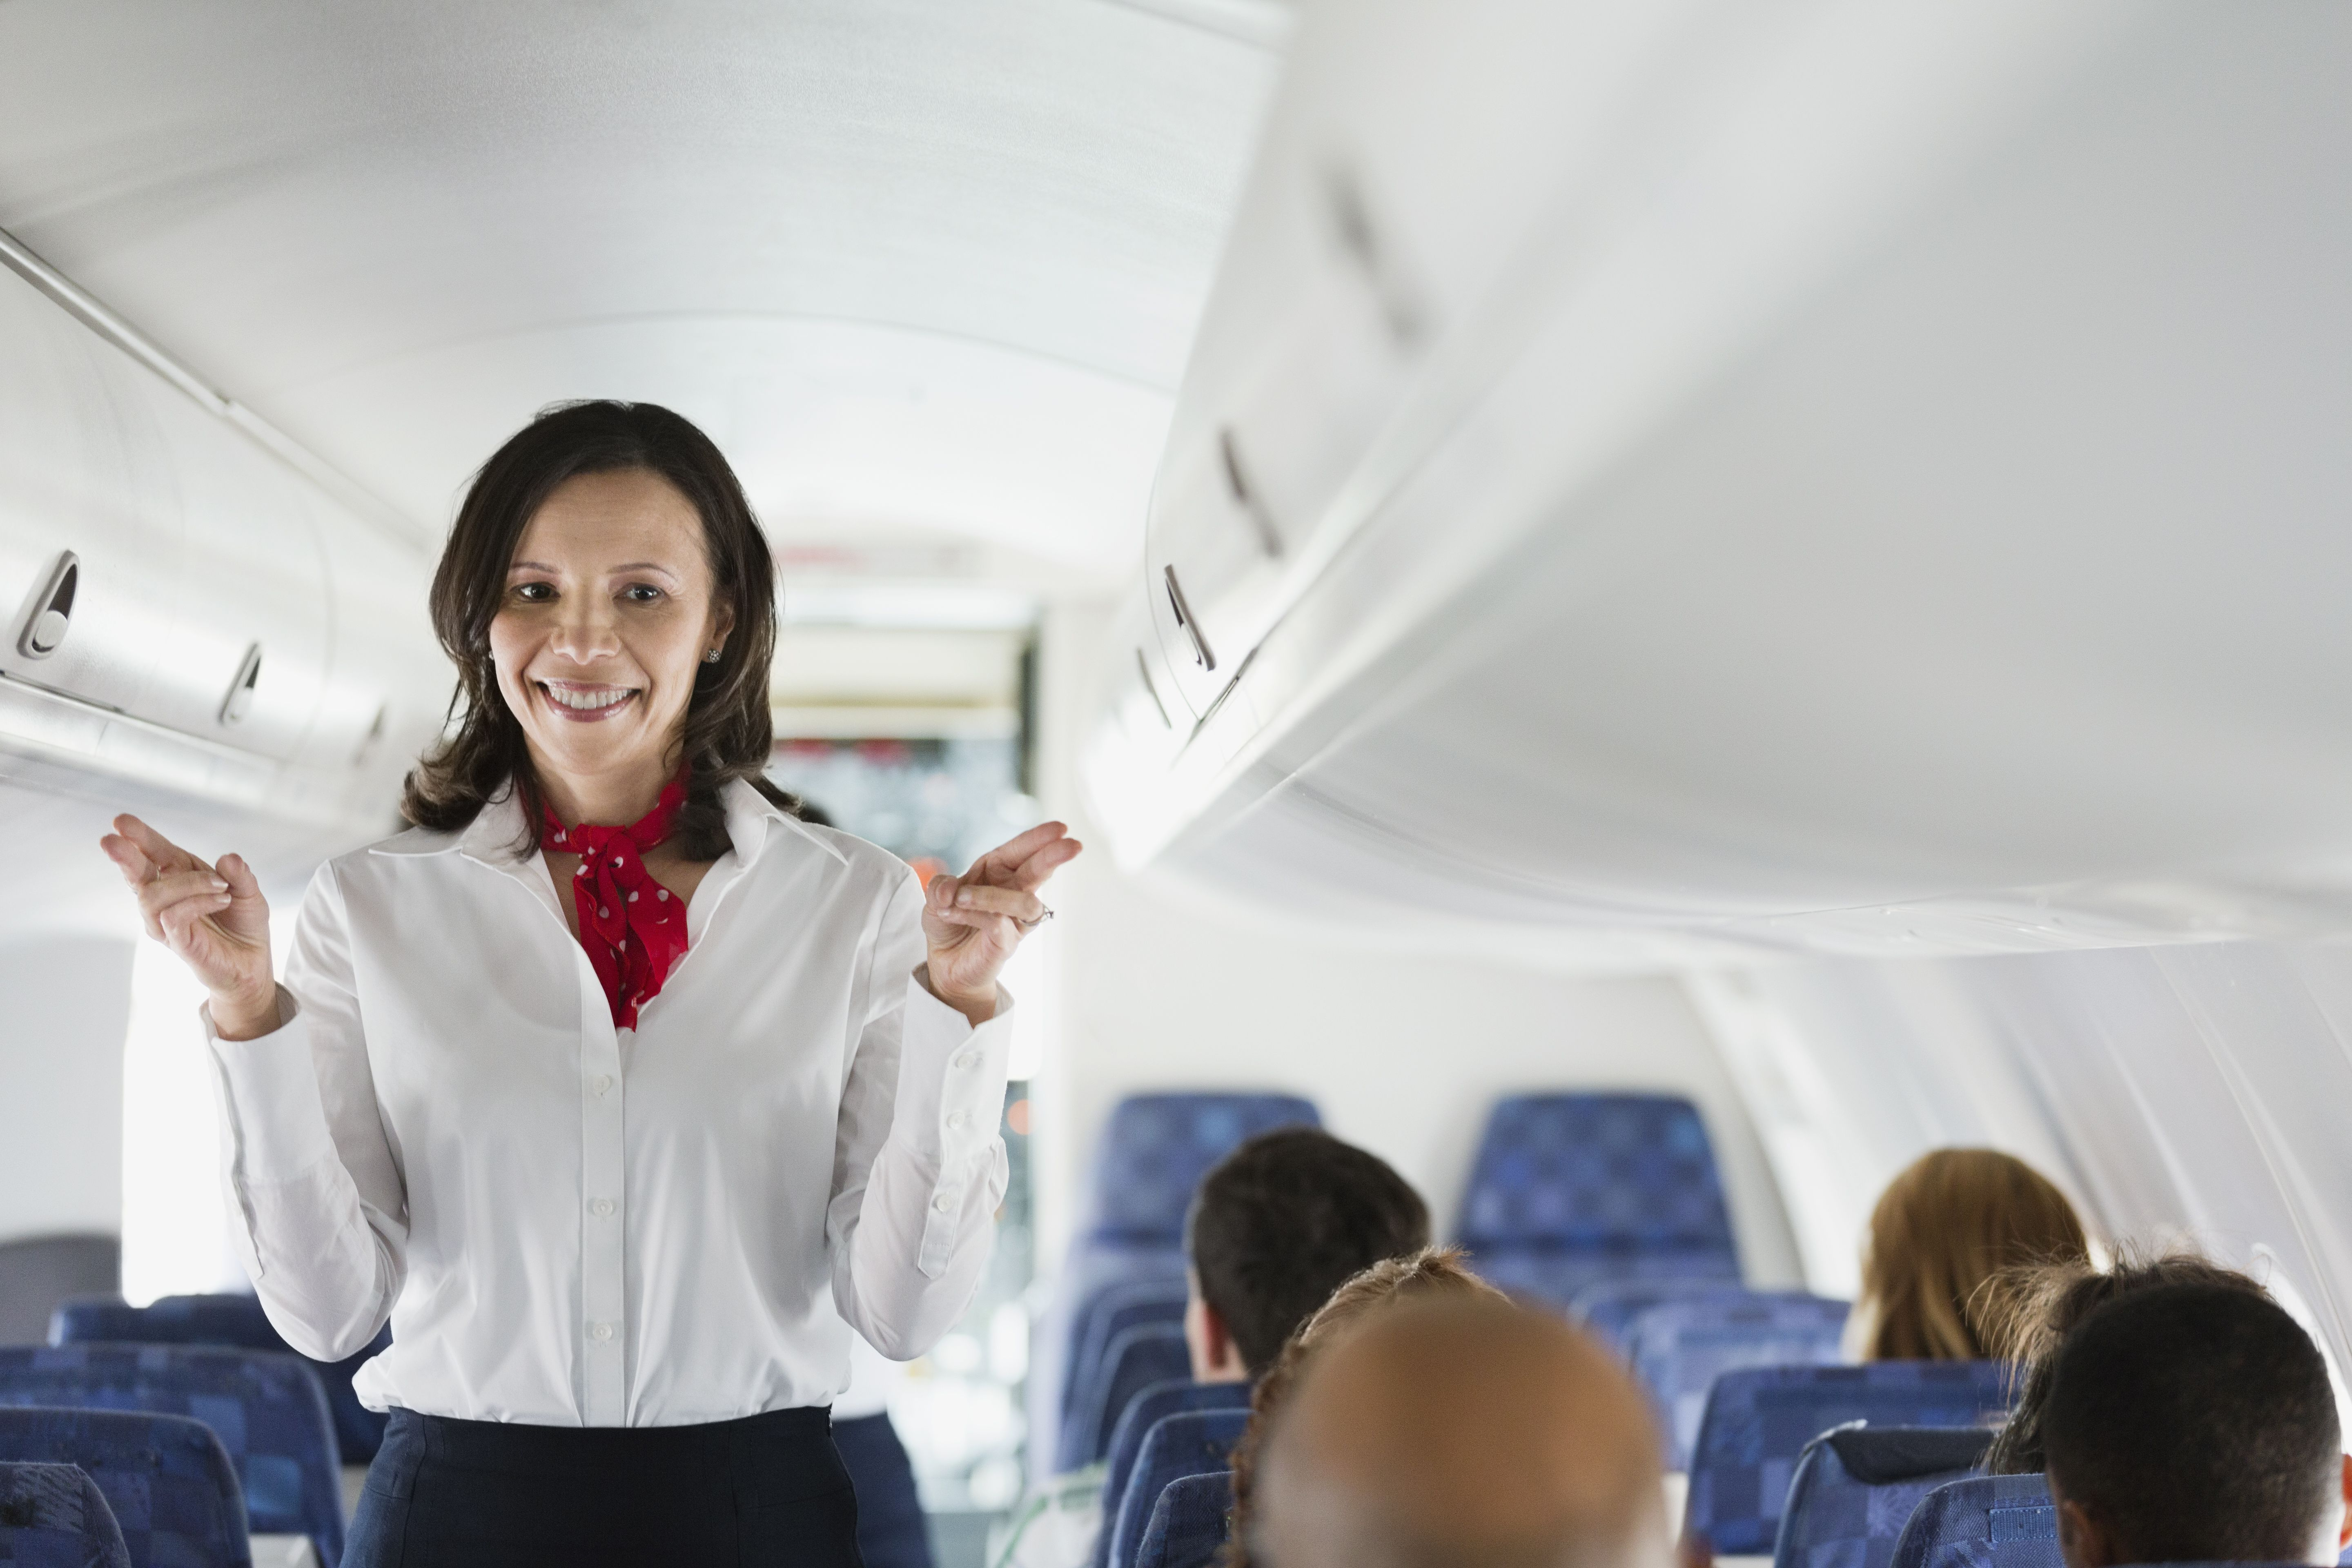 Flight attendant indicating exits in airplane